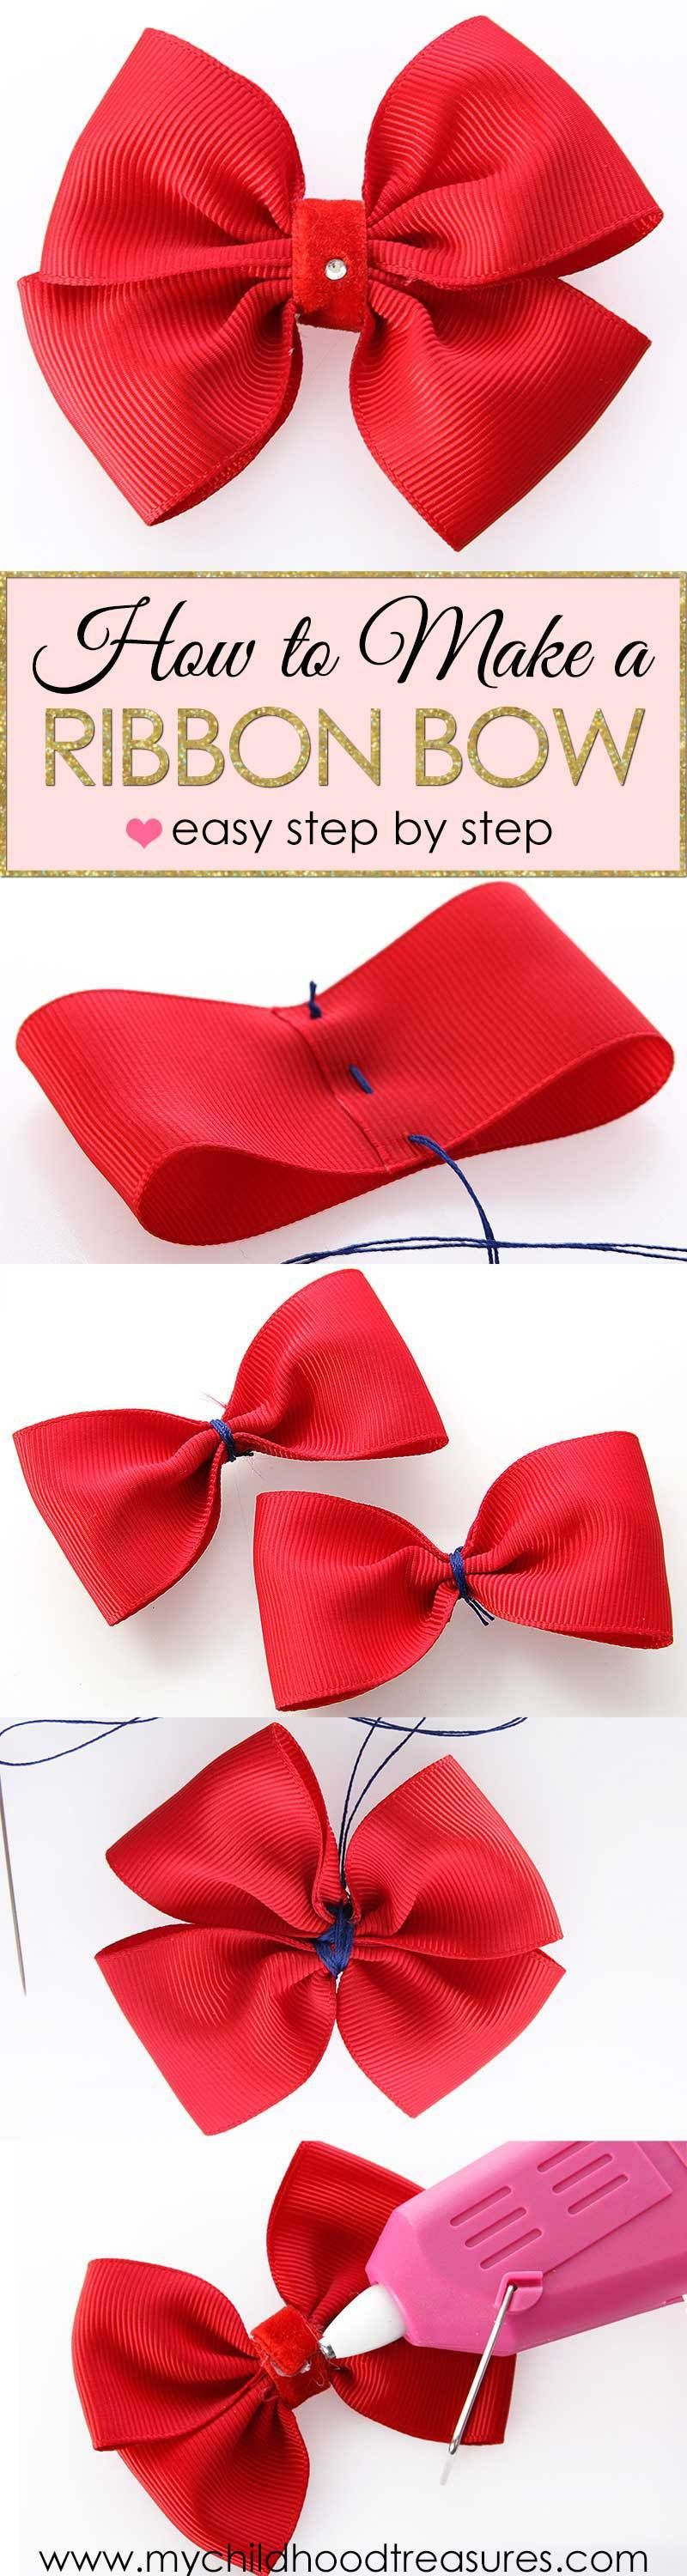 How to make a bow on his head 6